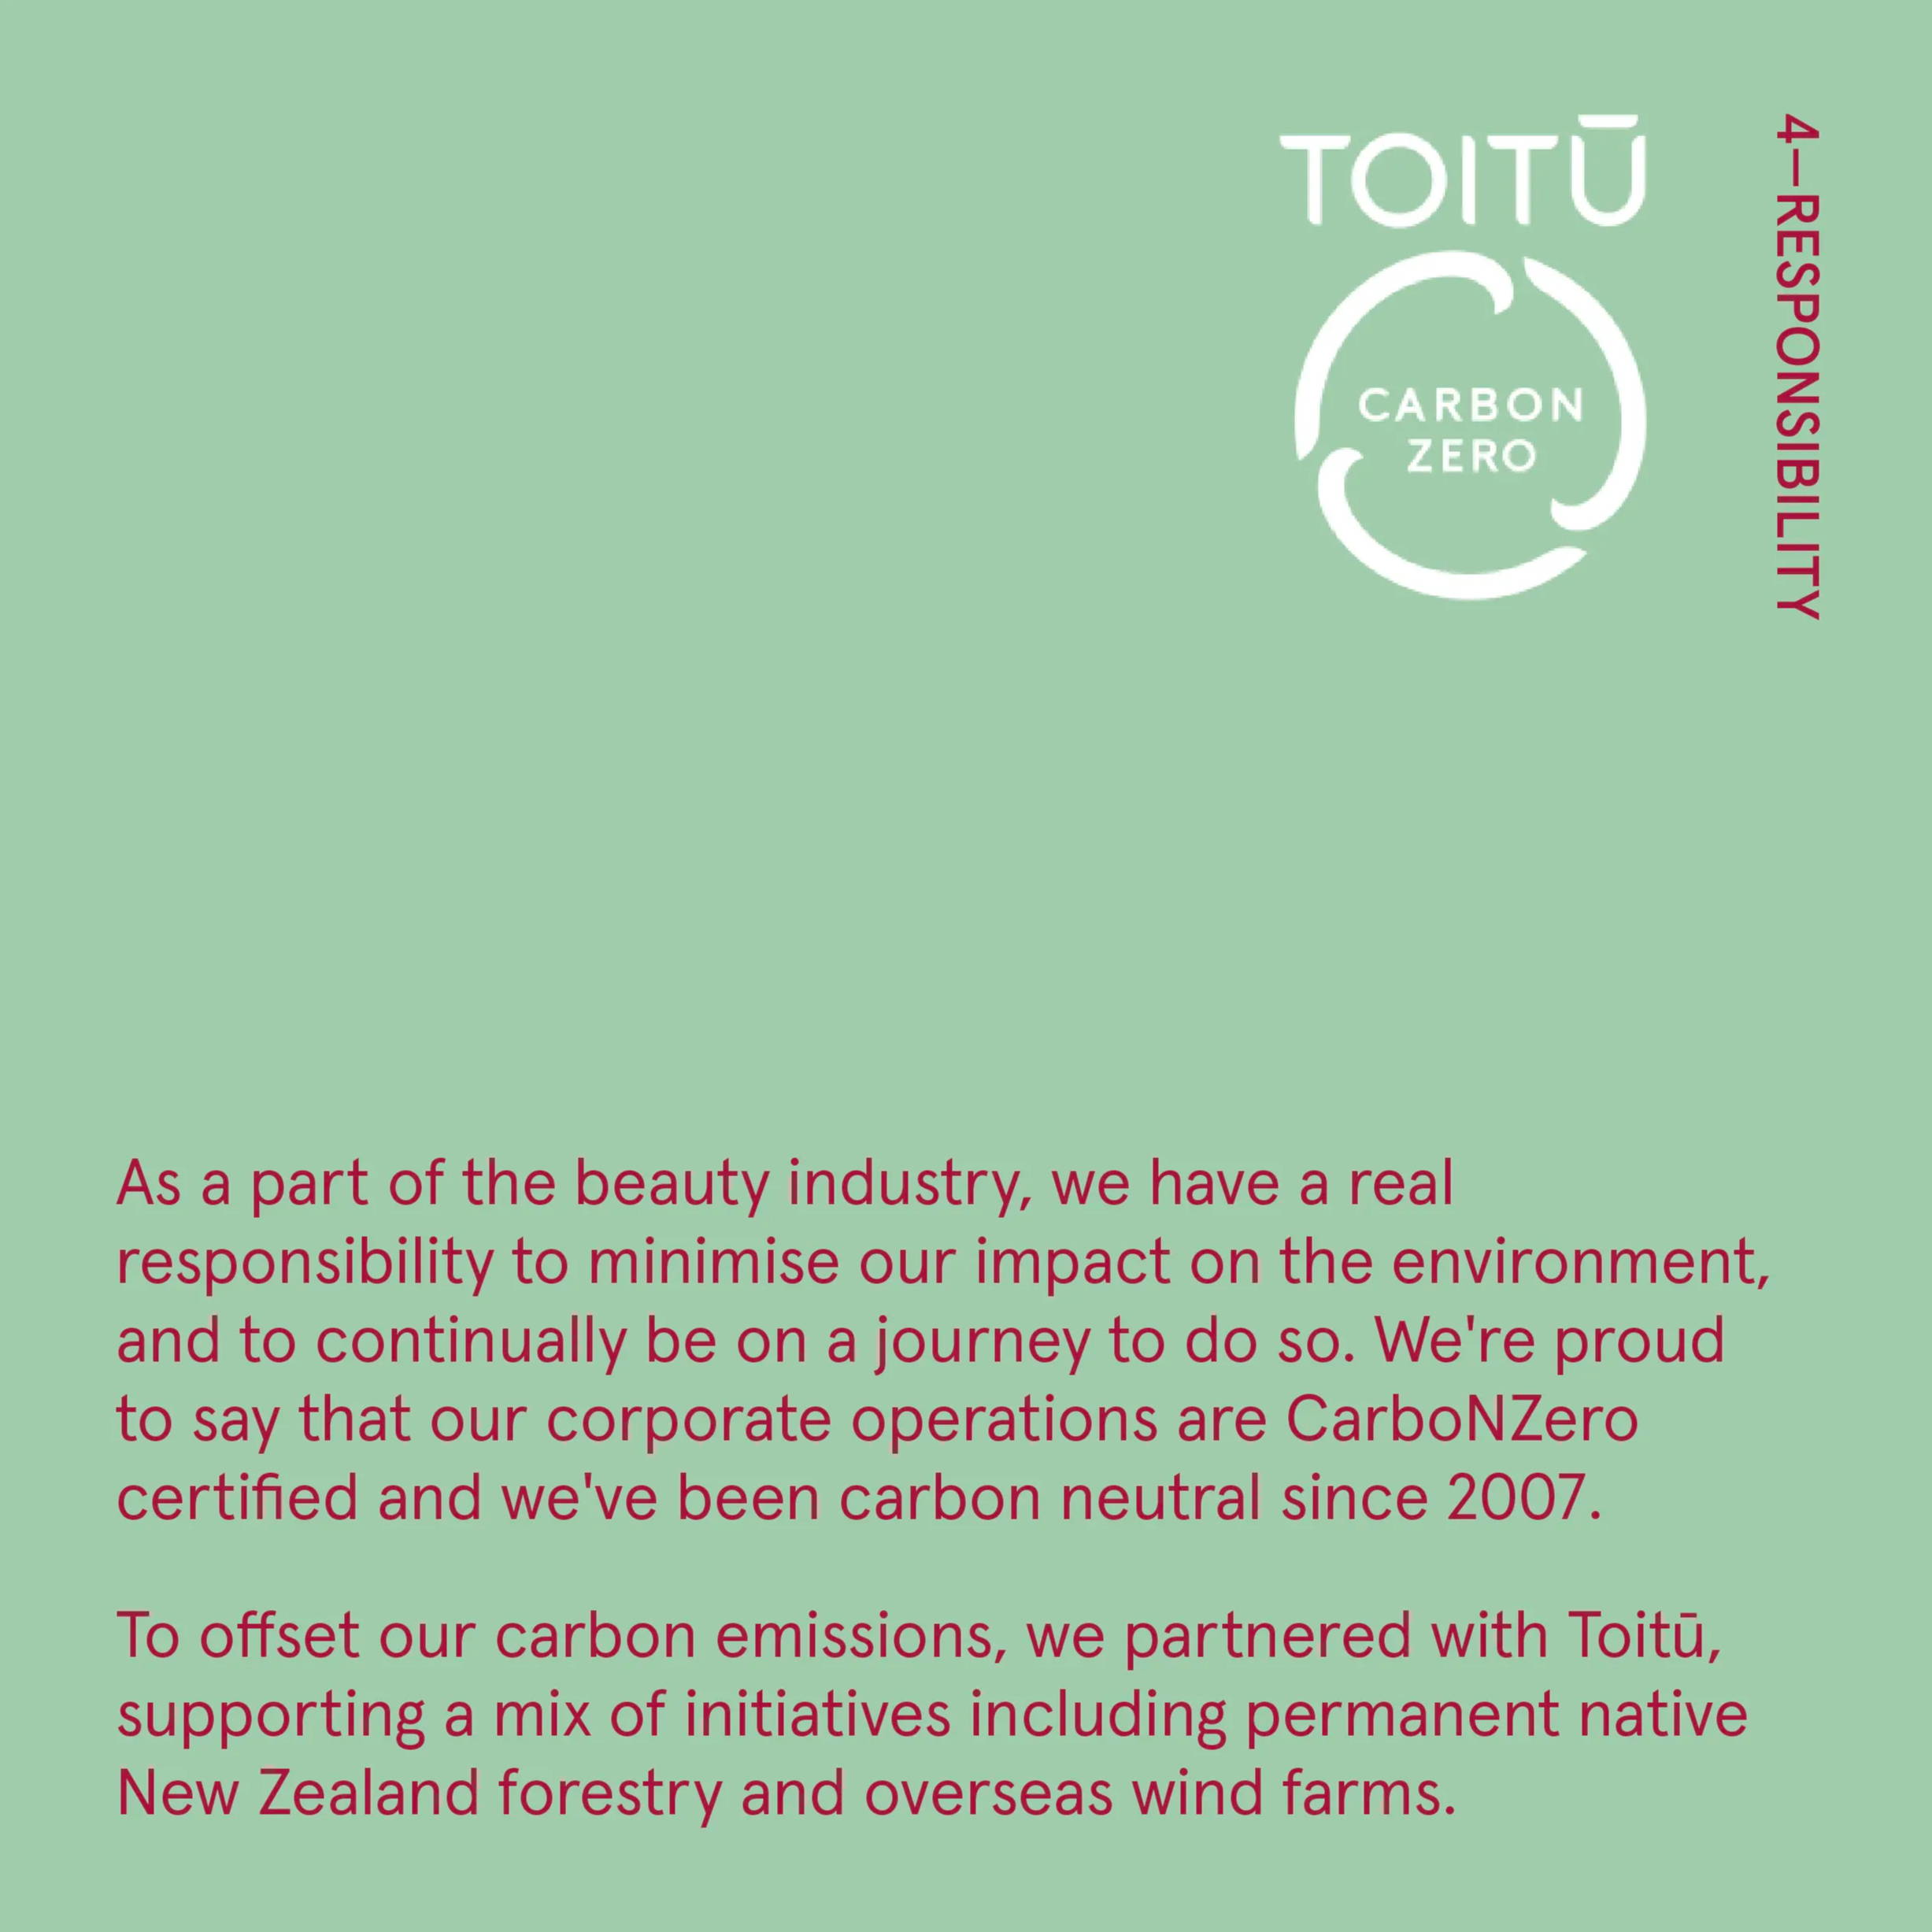 As well as creating natural beauty products, we're committed to navigating our practices with a steady moral compass. To do that, we work closely with our partners and suppliers to find sustainable solutions, support communities and back causes we believe in.